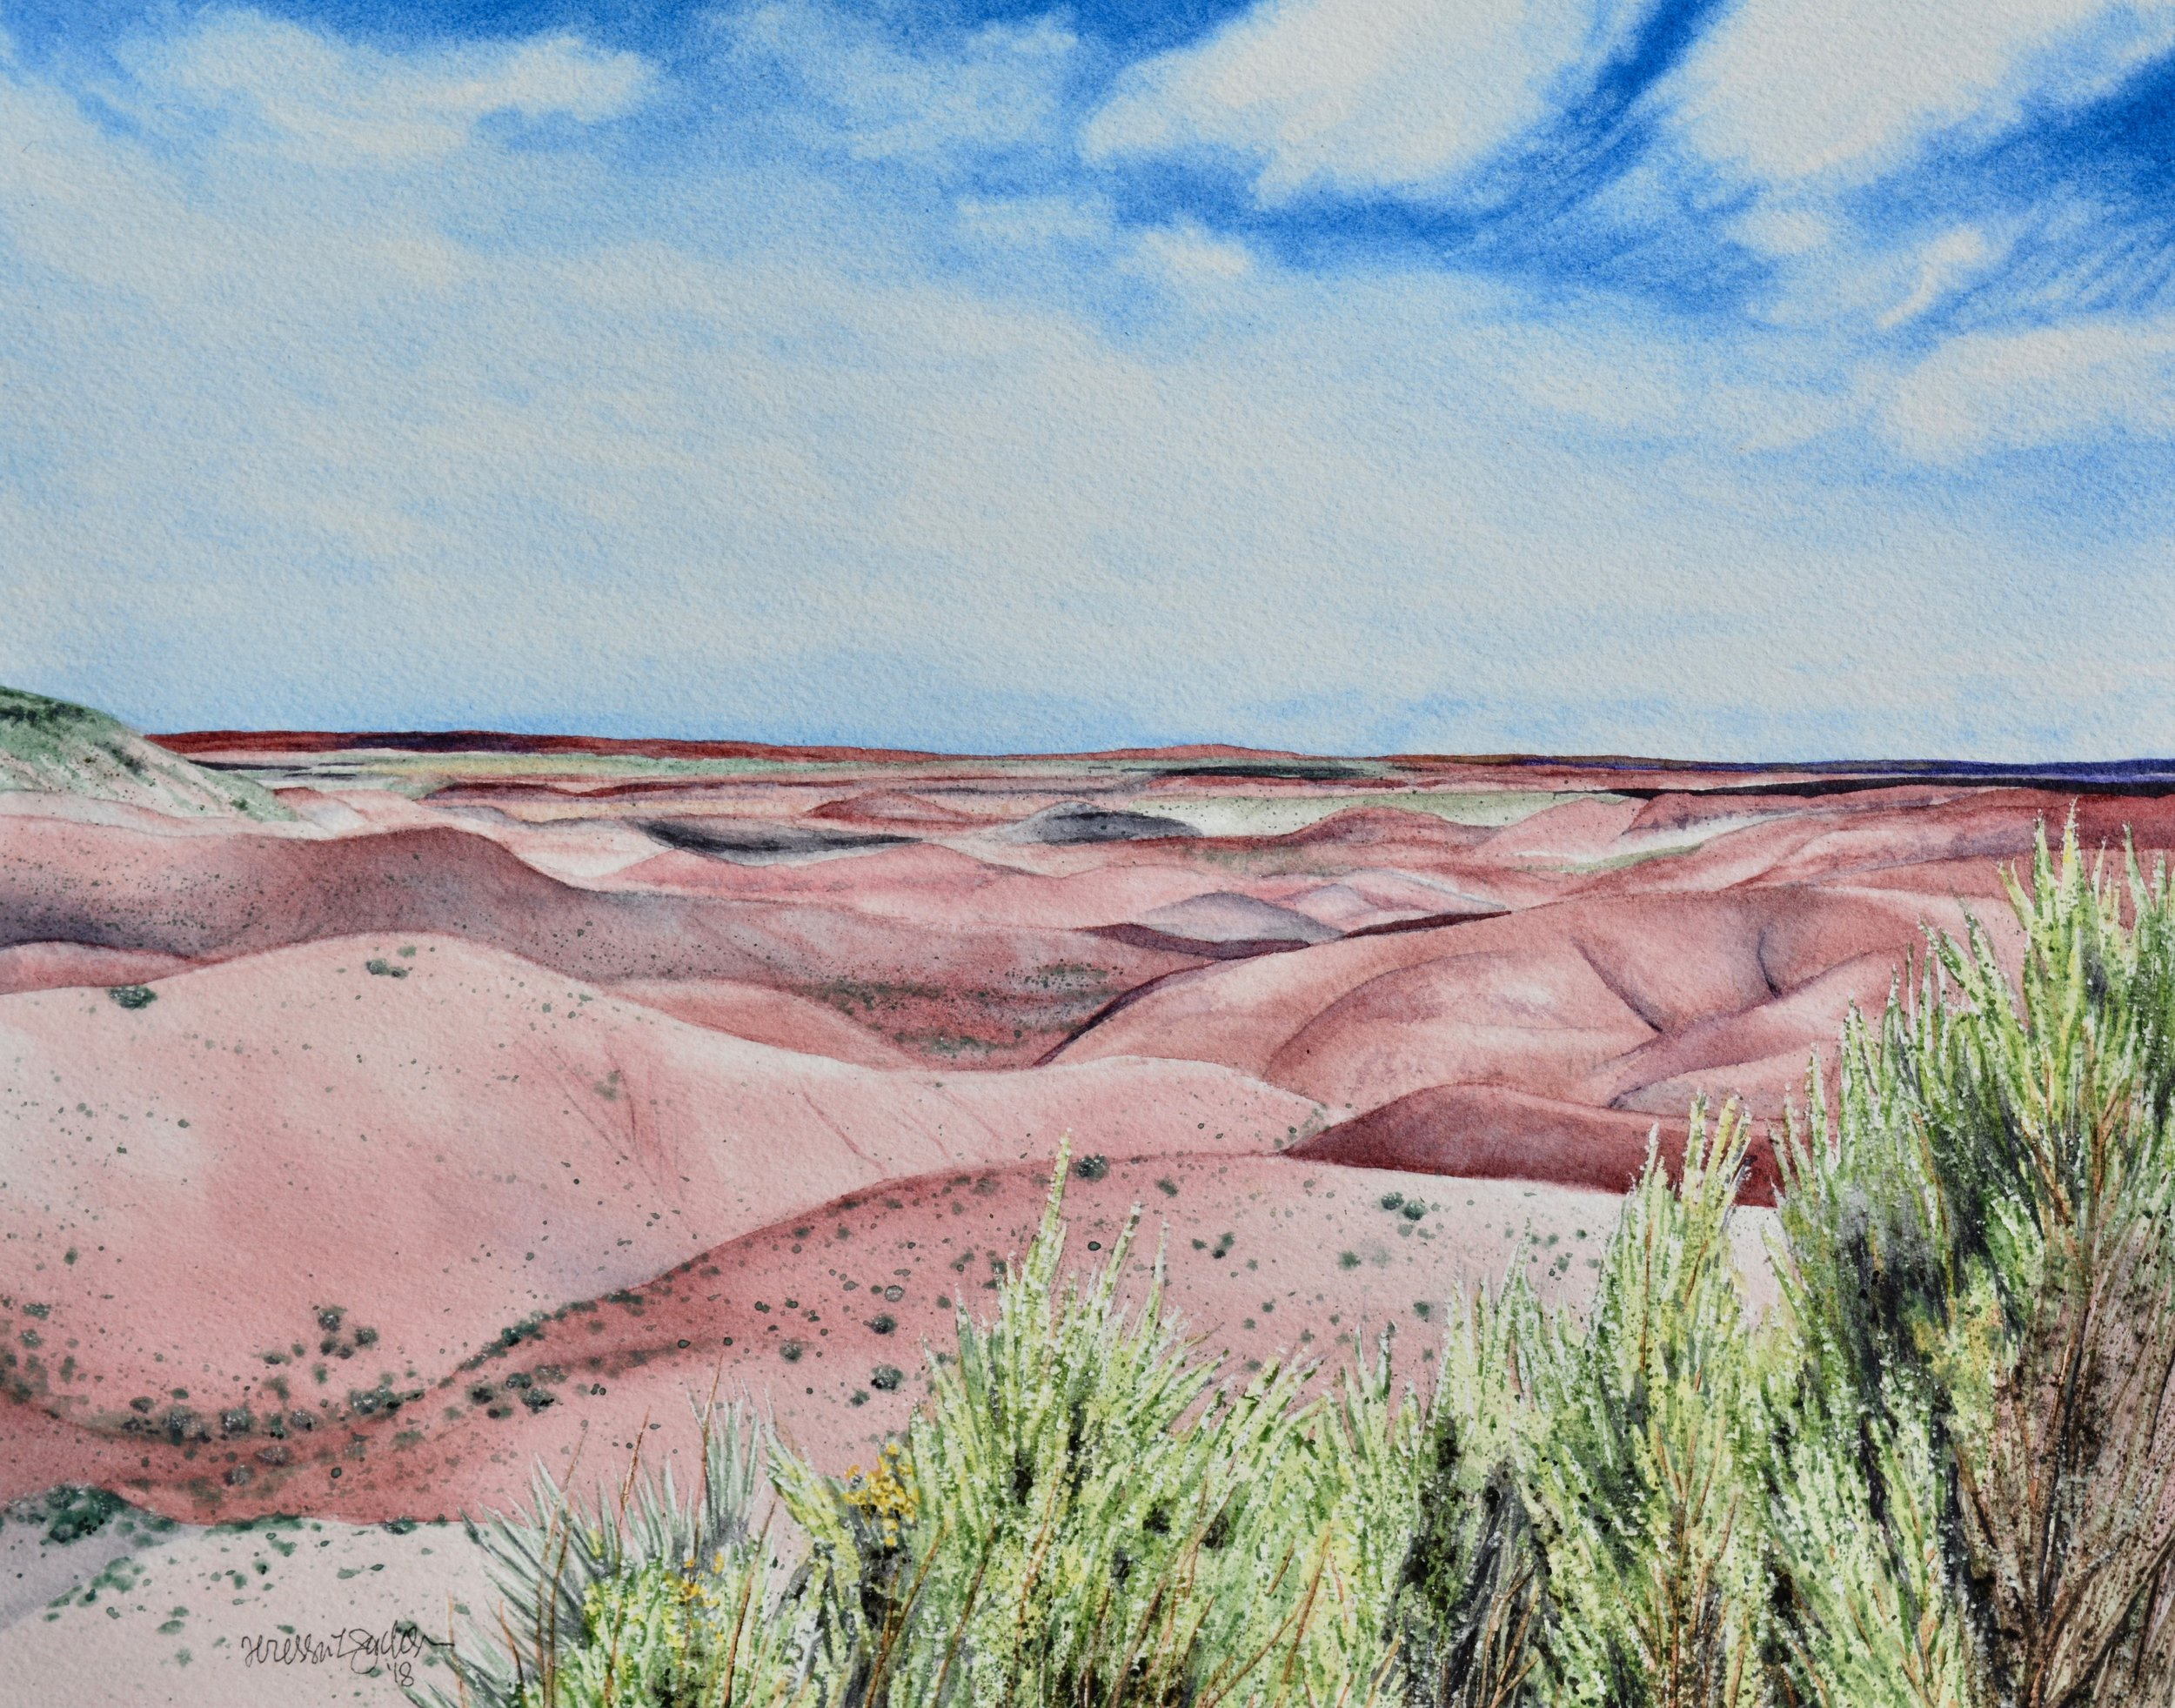 """Painted Desert²"" On exhibit at  Raices Taller 222 Art Gallery  until February 23, 2019 14x11"""